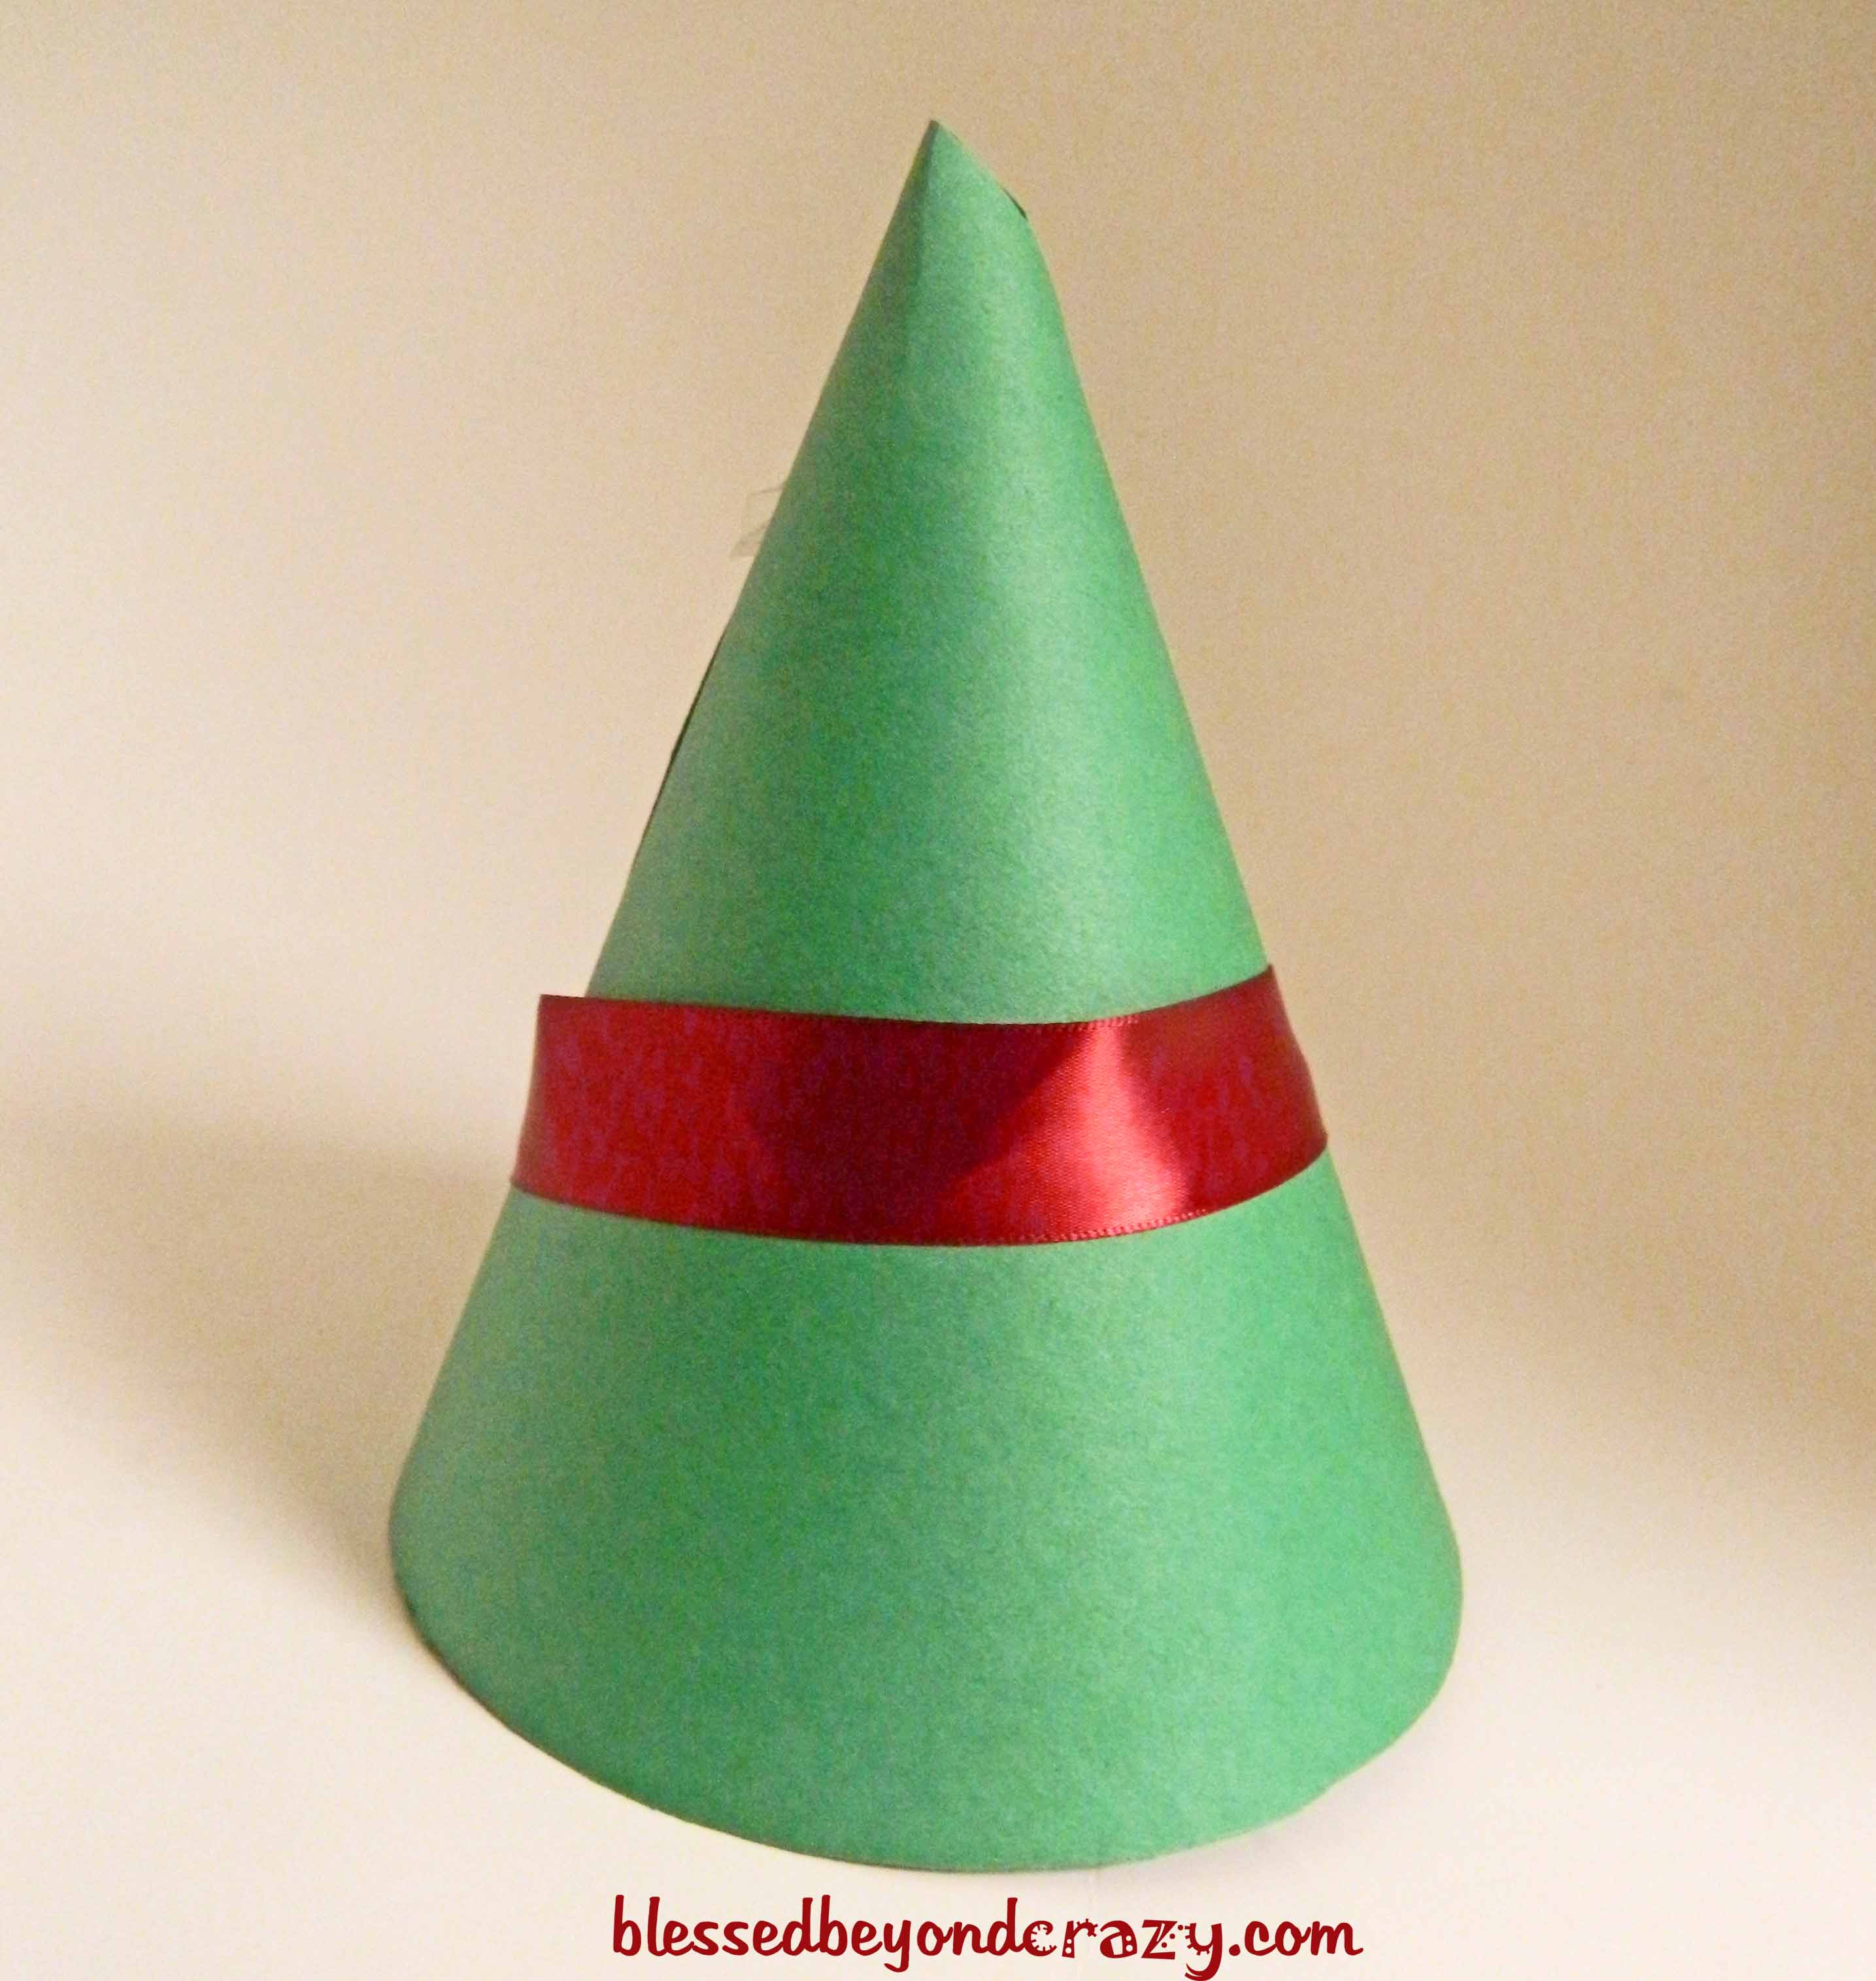 12 days of christmas crafts for kids roundup blessed for Craft hats for kids